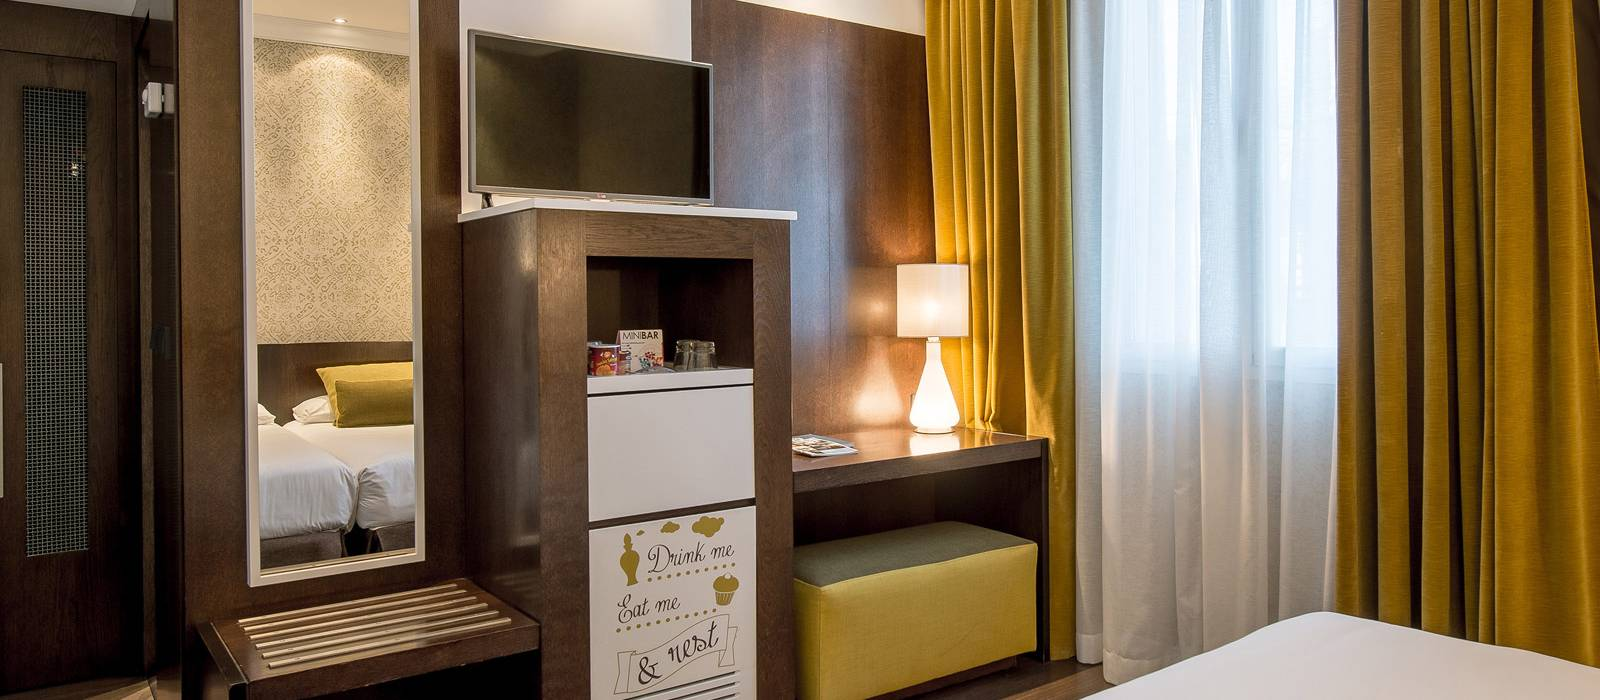 Habitación Doble - Vincci Centrum 4* - Madrid